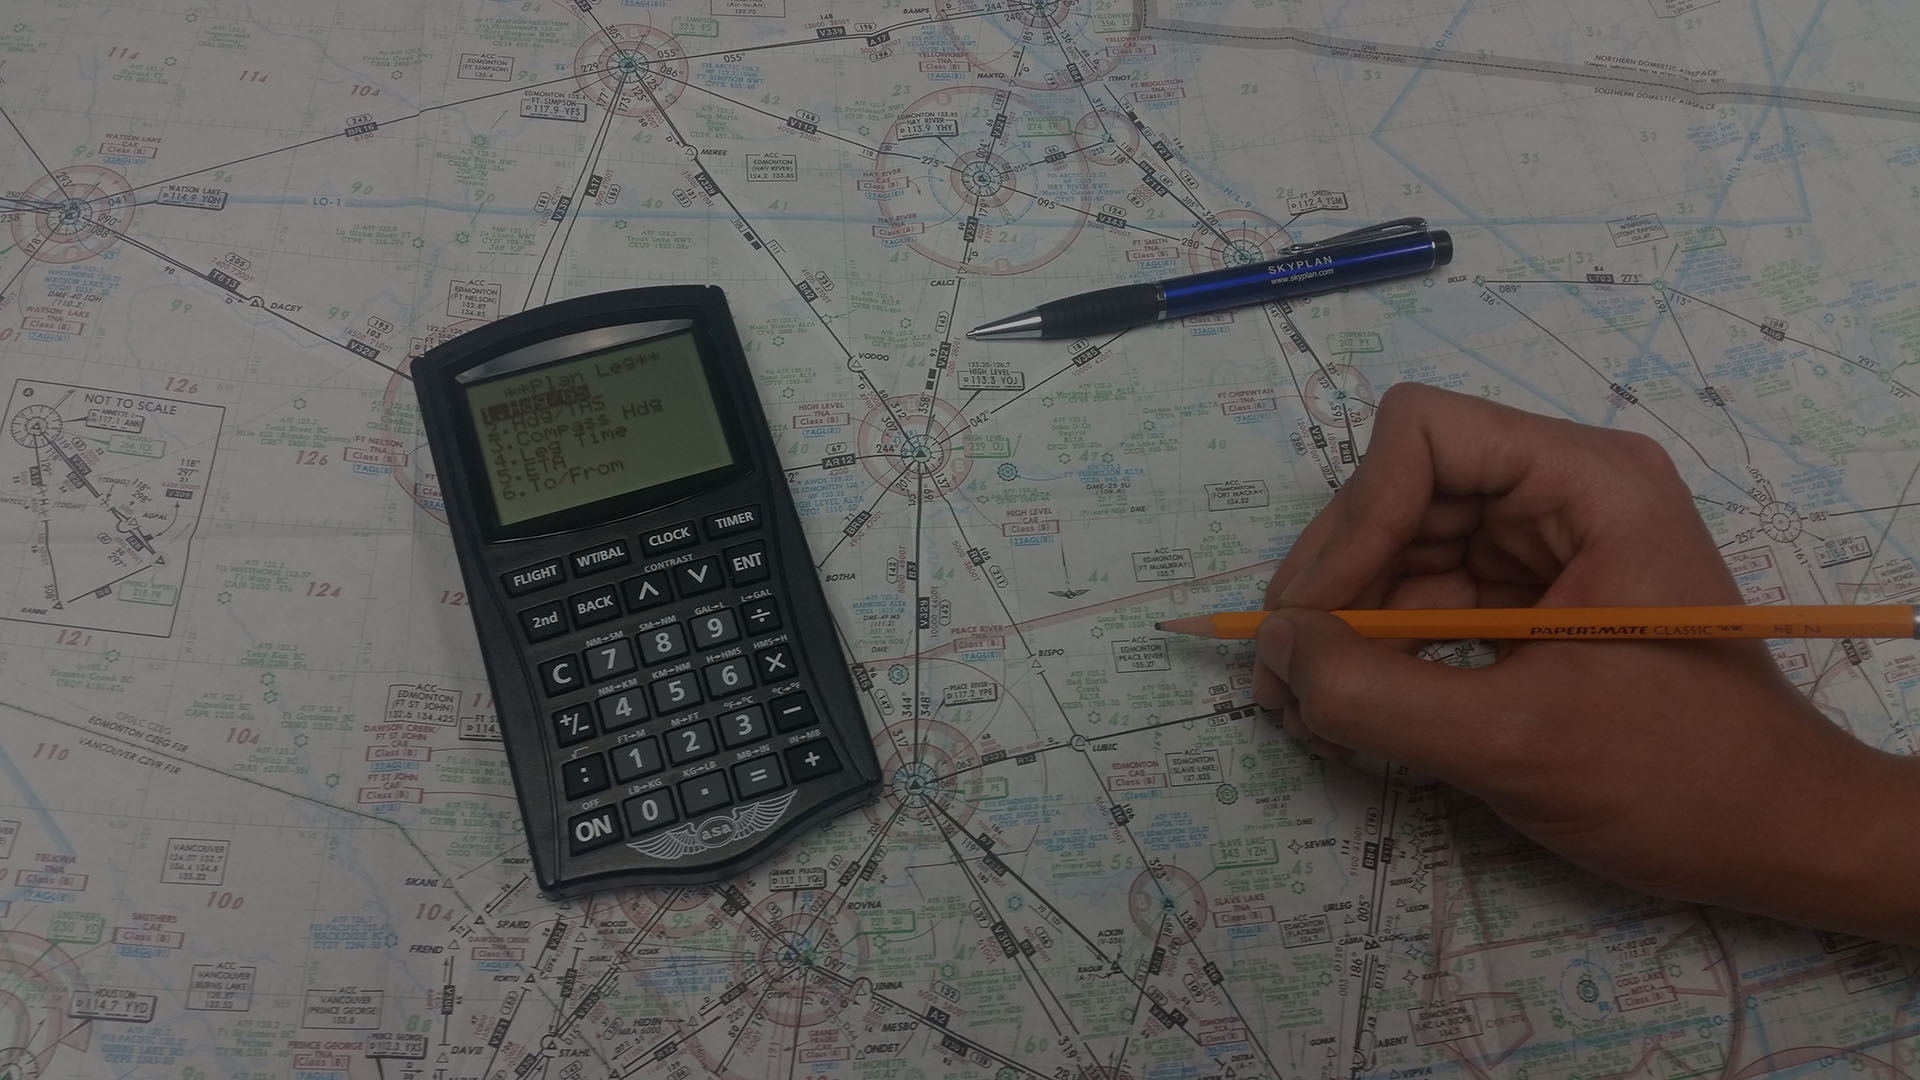 Professional IFR Trip Planning done by Skyplan's Licensed Flight Dispatch Team